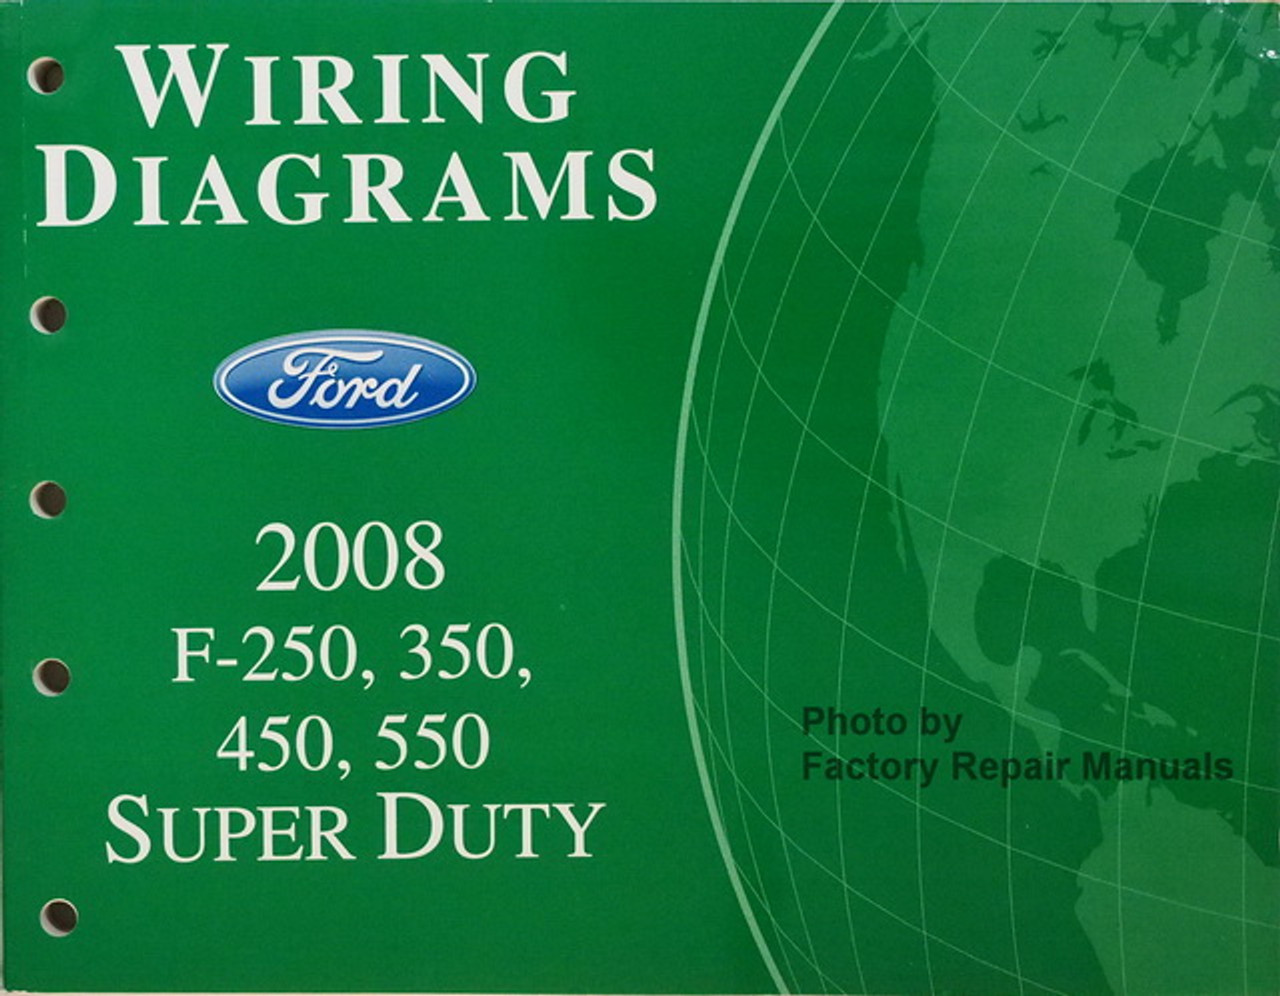 2008 ford f250 f350 f450 f550 super duty truck electrical wiring diagrams  new - factory repair manuals  factory repair manuals